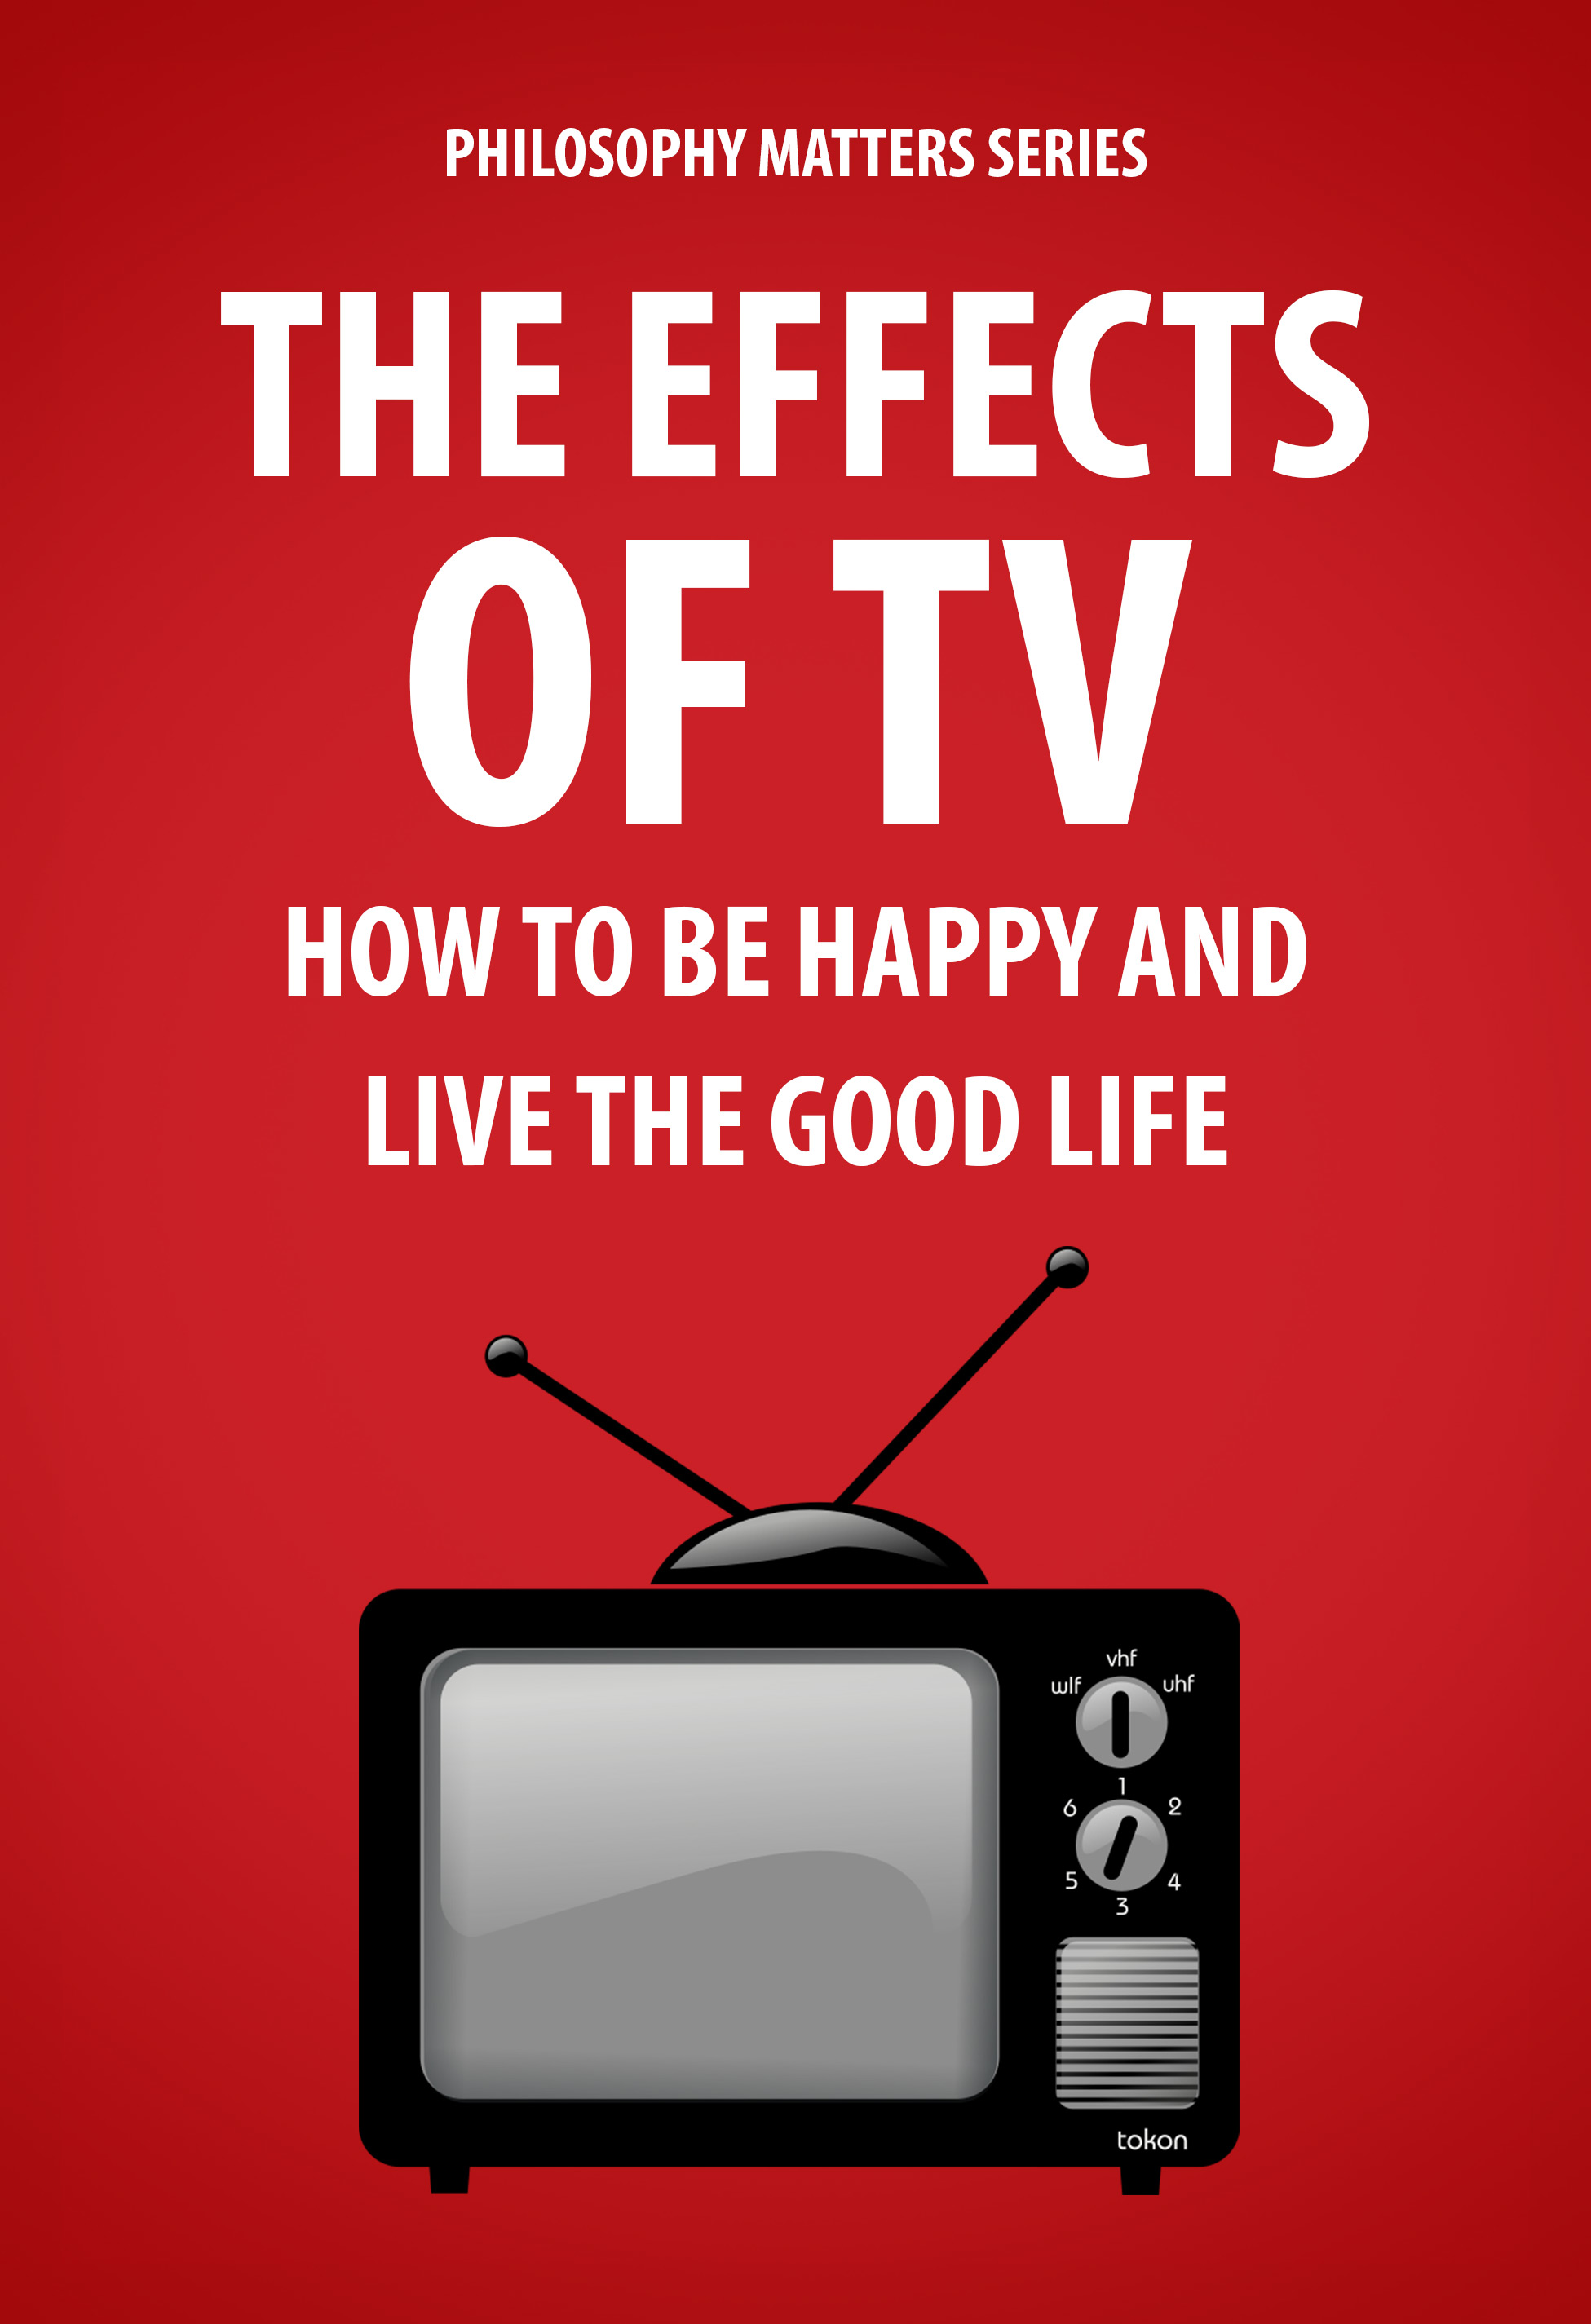 The Effects of TV: How To Be Happy and Live the Good Life